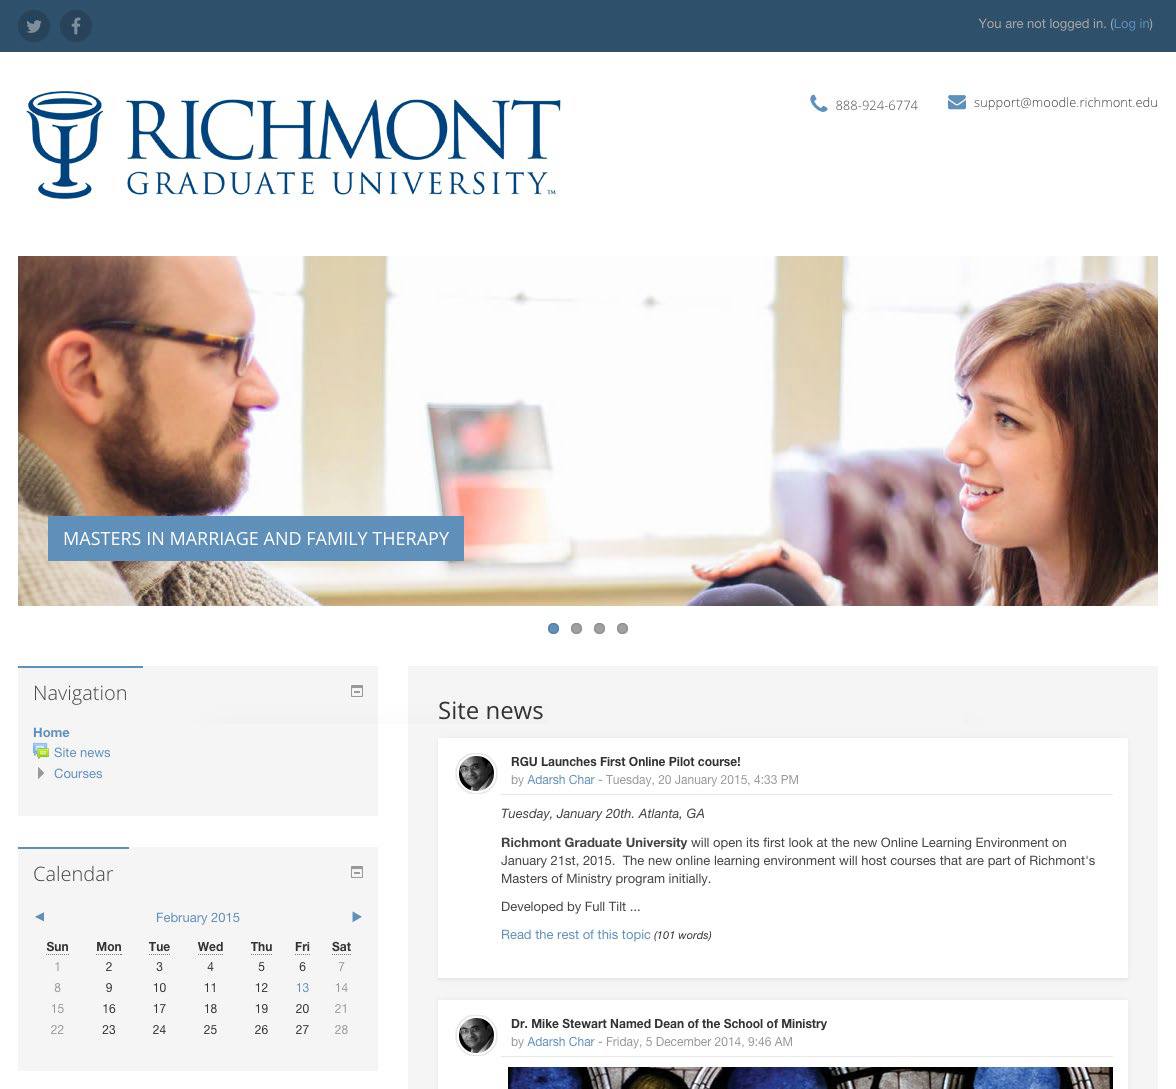 Custom Moodle implementation for Richmont Graduate University